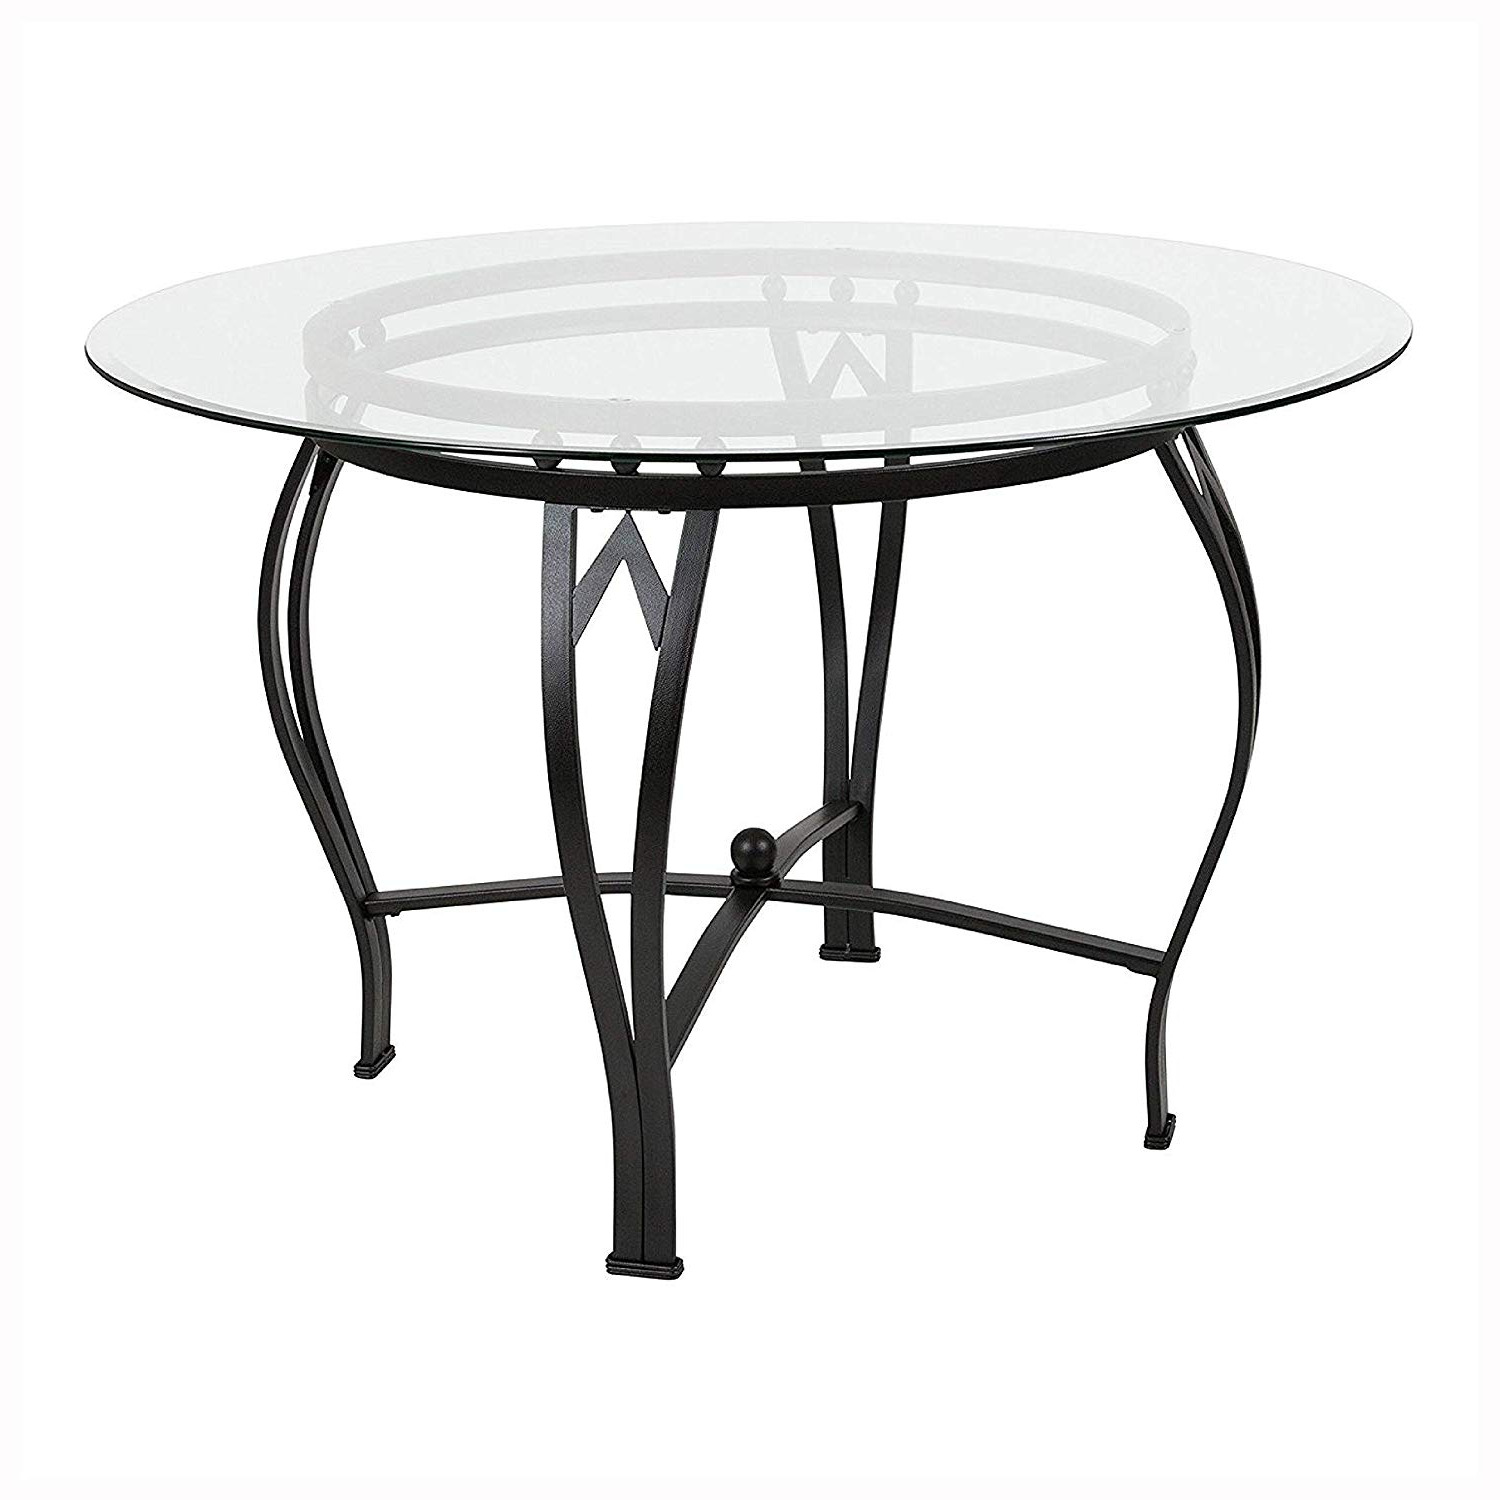 2019 Round Glass Top Dining Tables Throughout Amazon – Dining Tables, Modern 45 Inch Round Glass Top (View 9 of 25)